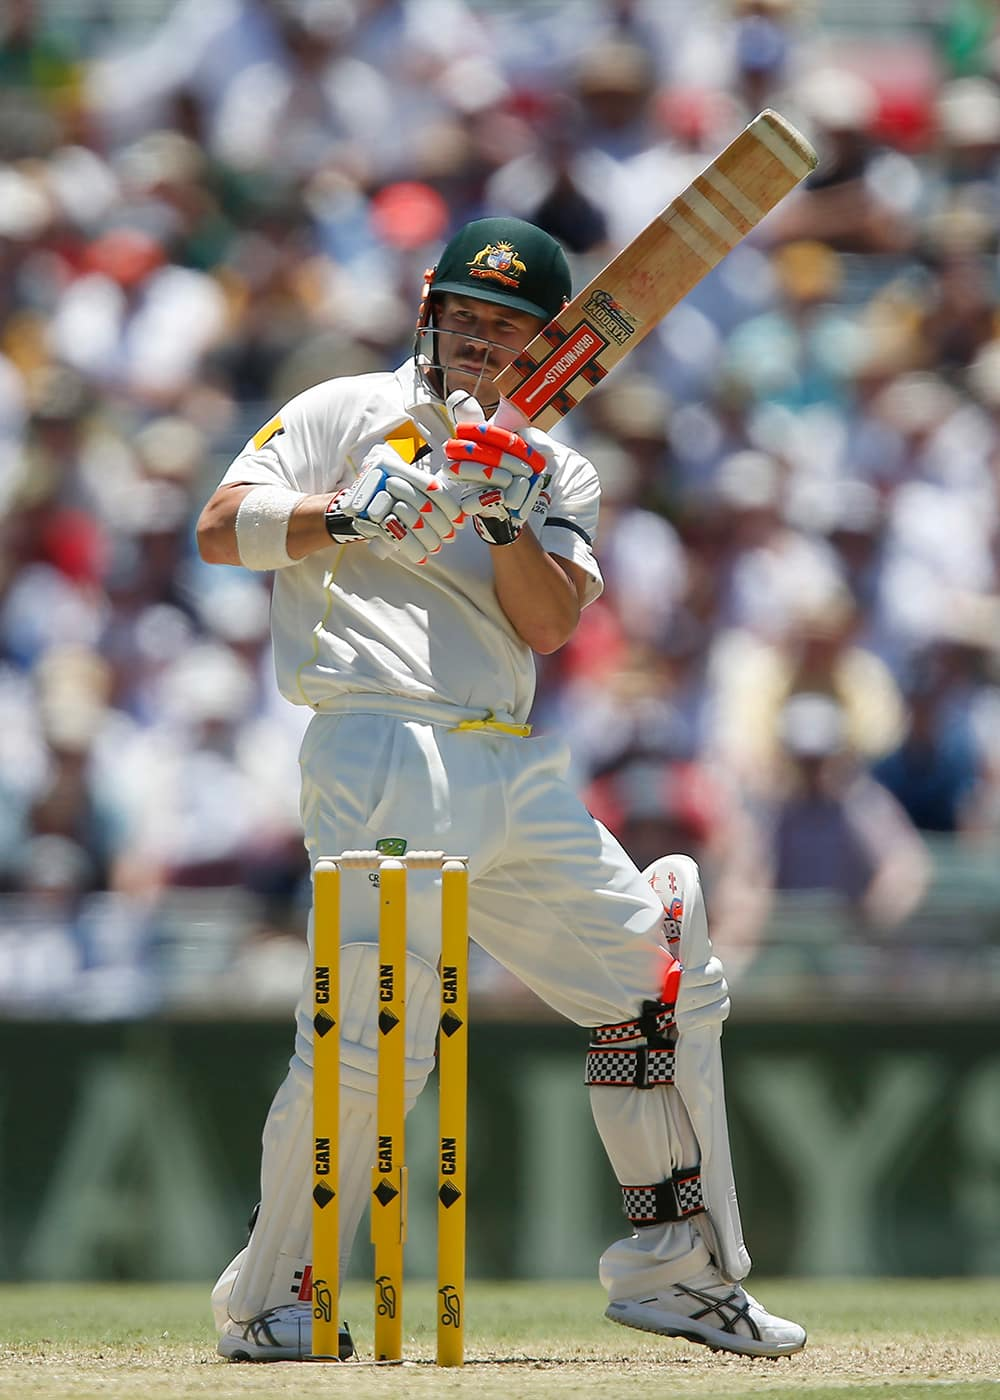 Australia's Dave Warner plays a hook shoot on the first day of the Ashes cricket test match against England in Perth, Australia.